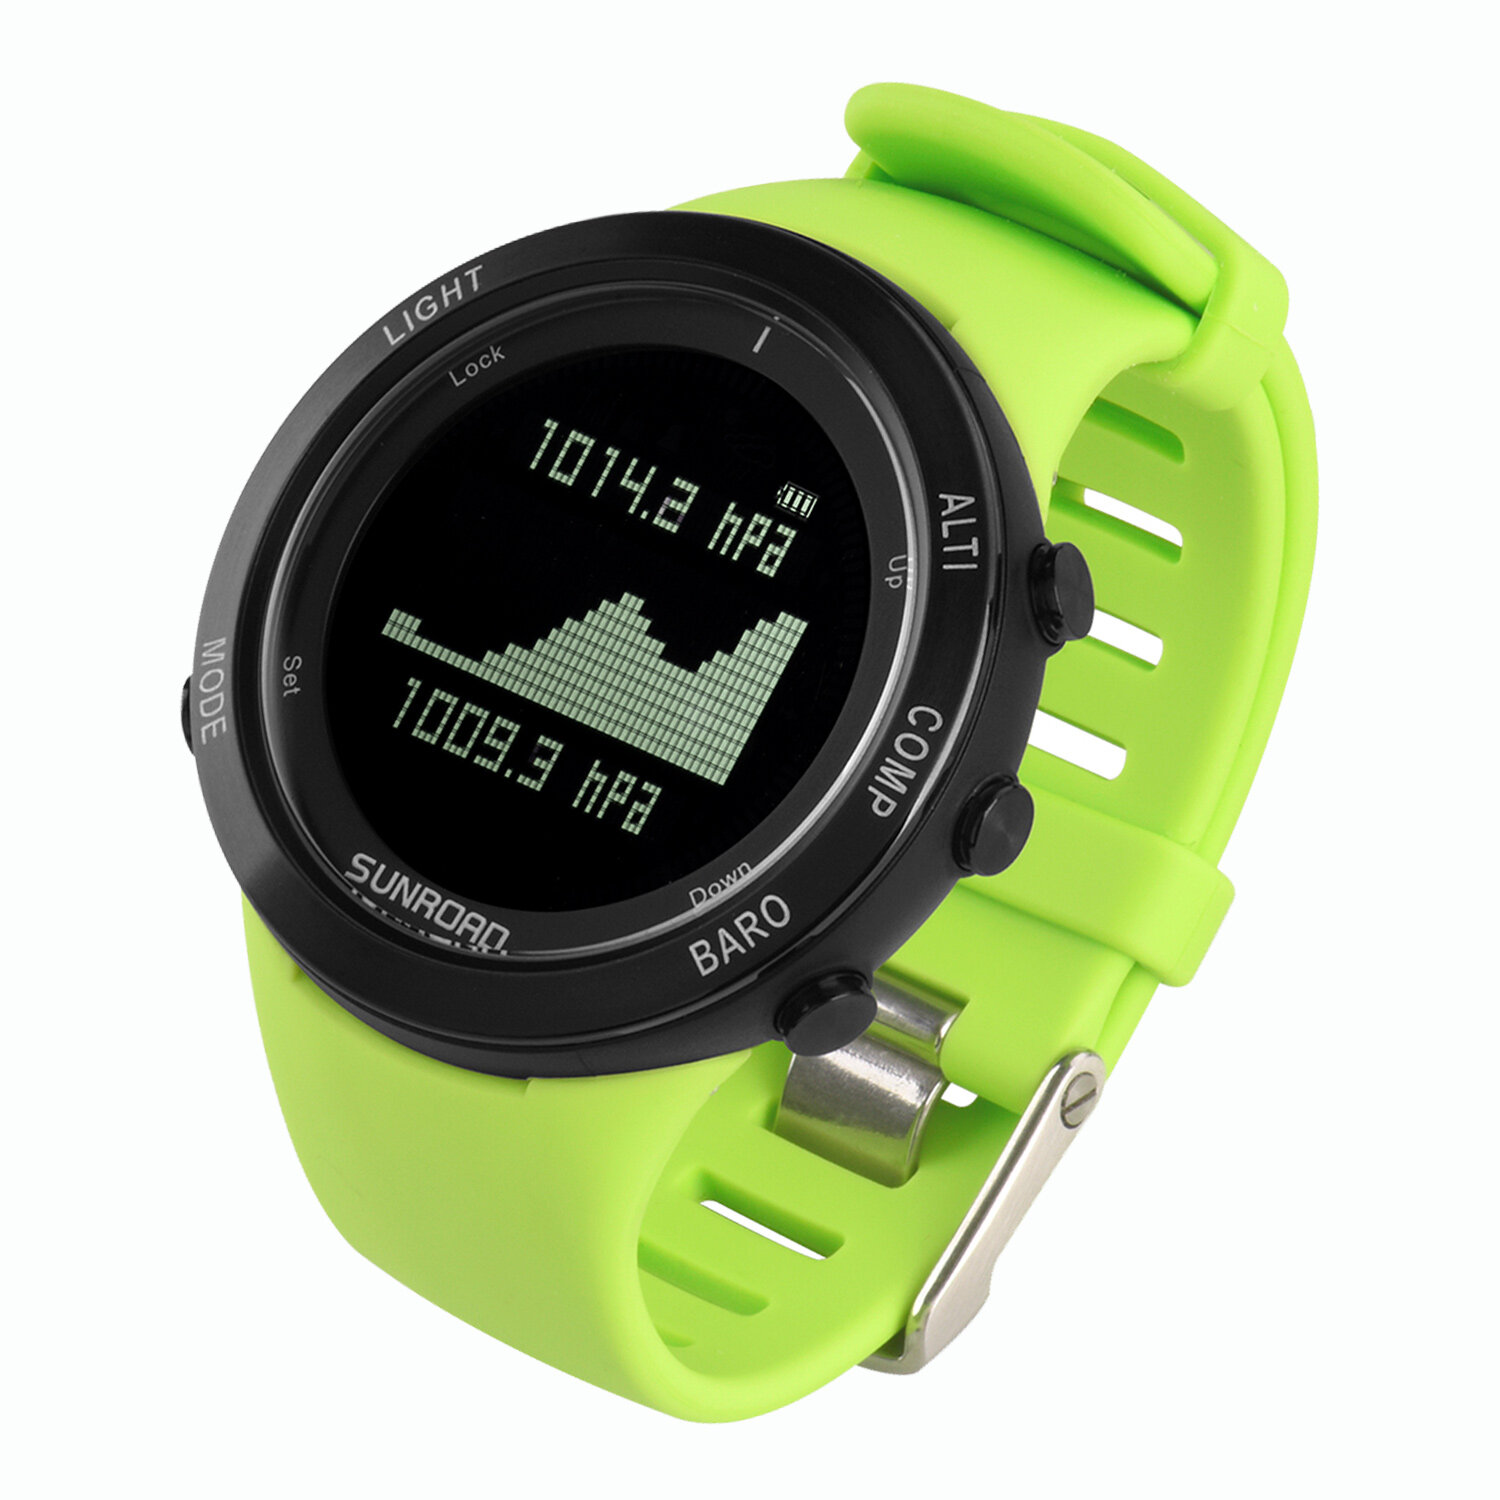 Sunroad heart rate outdoor sports watch with Pedometer, altimeter, climb data, hiking, camping, traveling watch waterproof 0